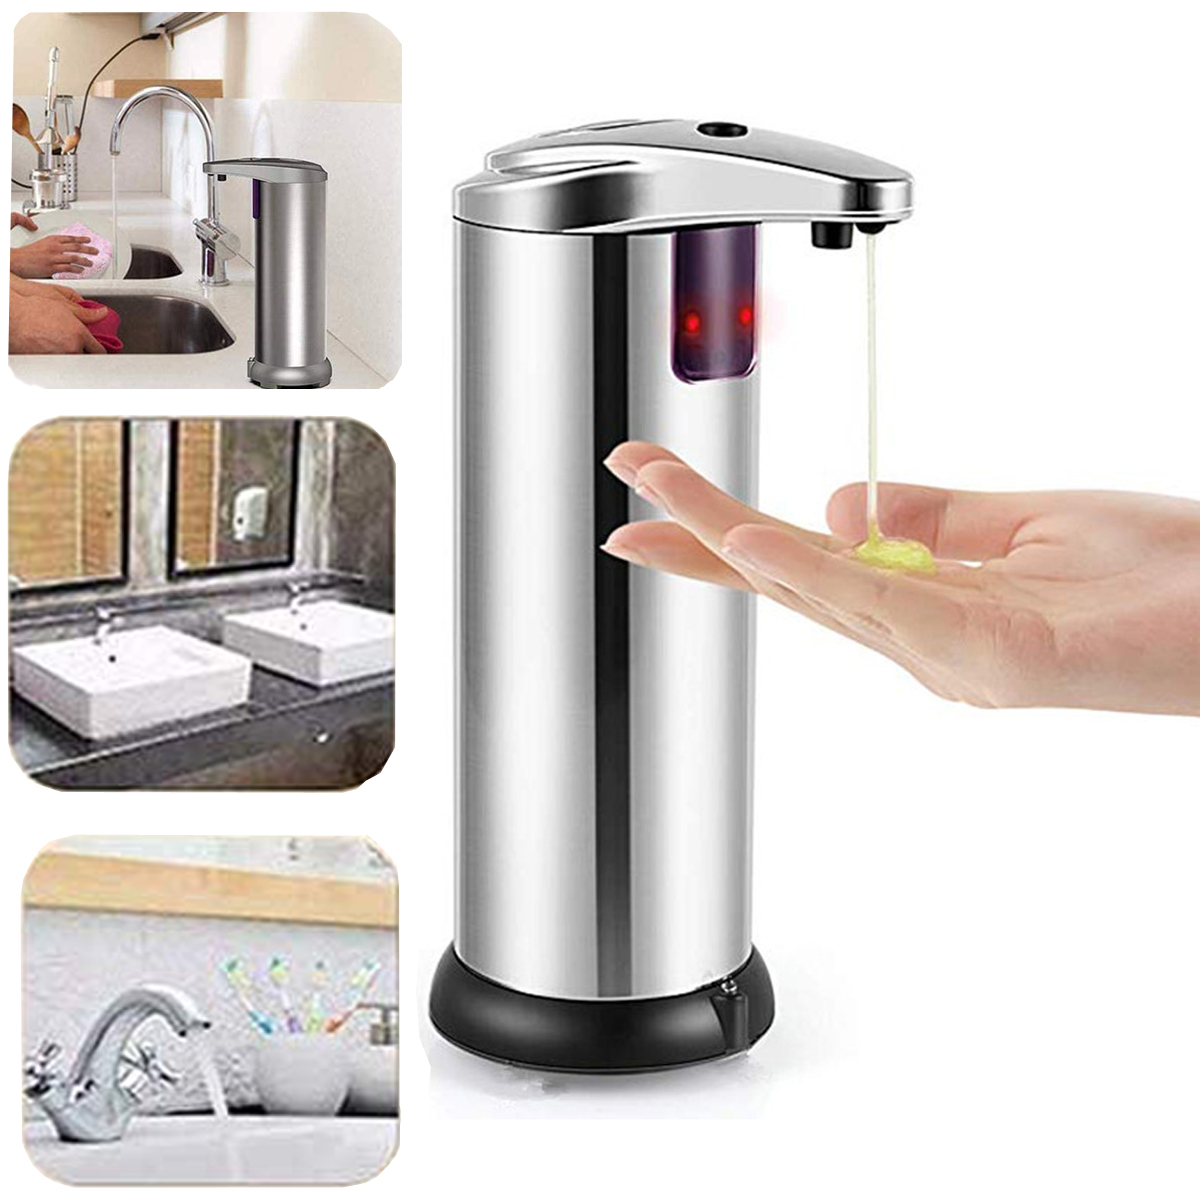 stainless steel hands free automatic sensor touchless soap